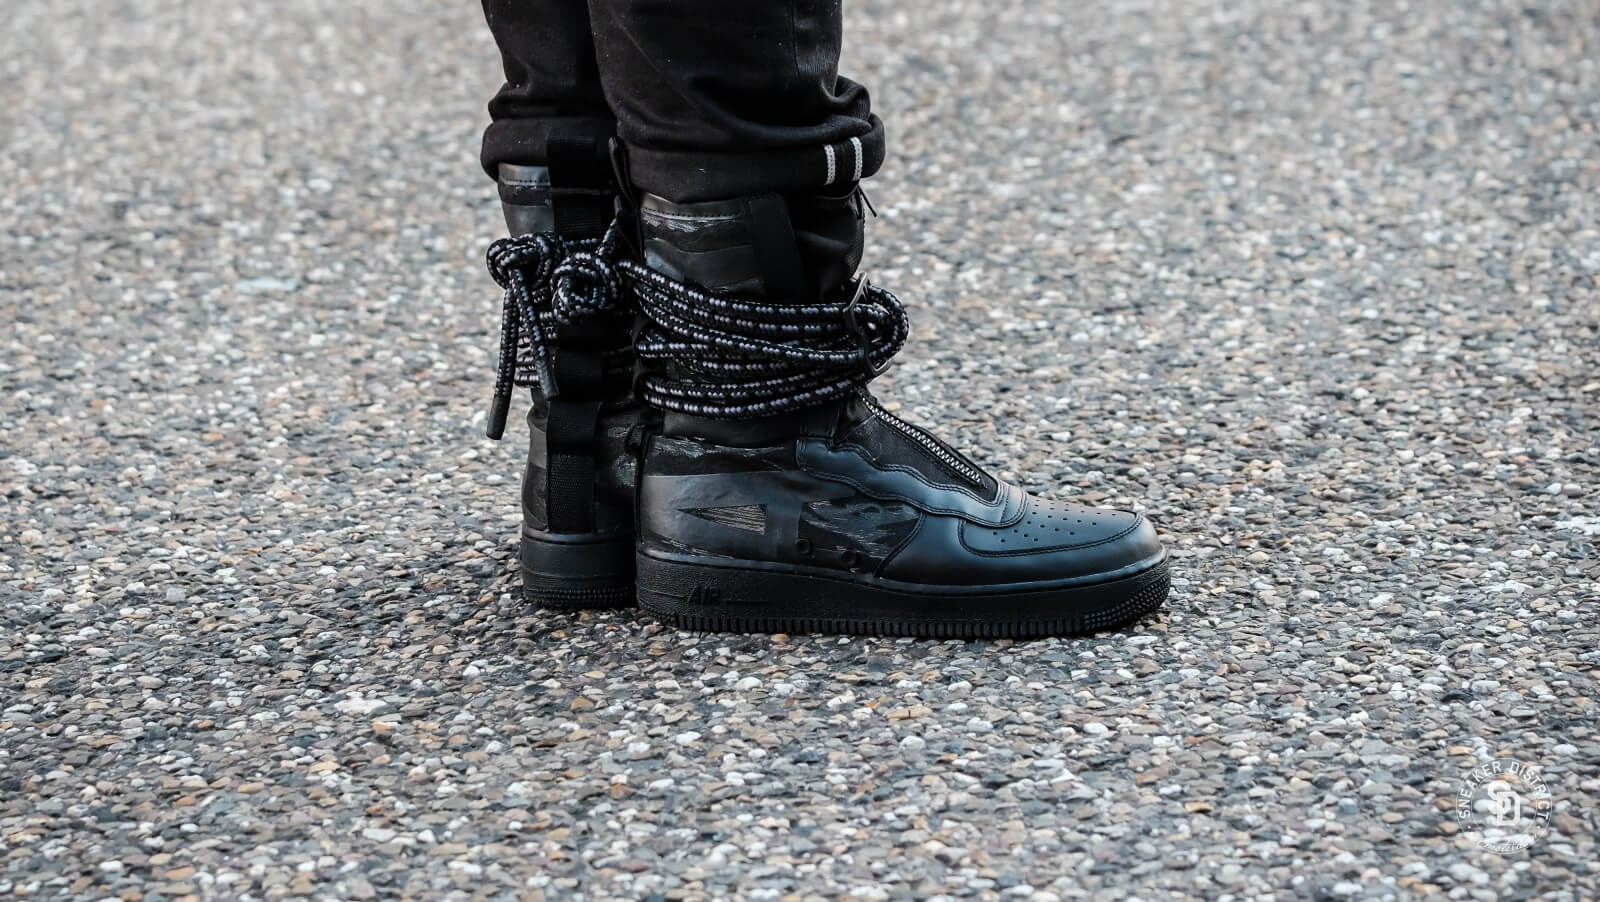 Nike SF Air Force 1 Hi Black/Dark Grey - AA1128-002